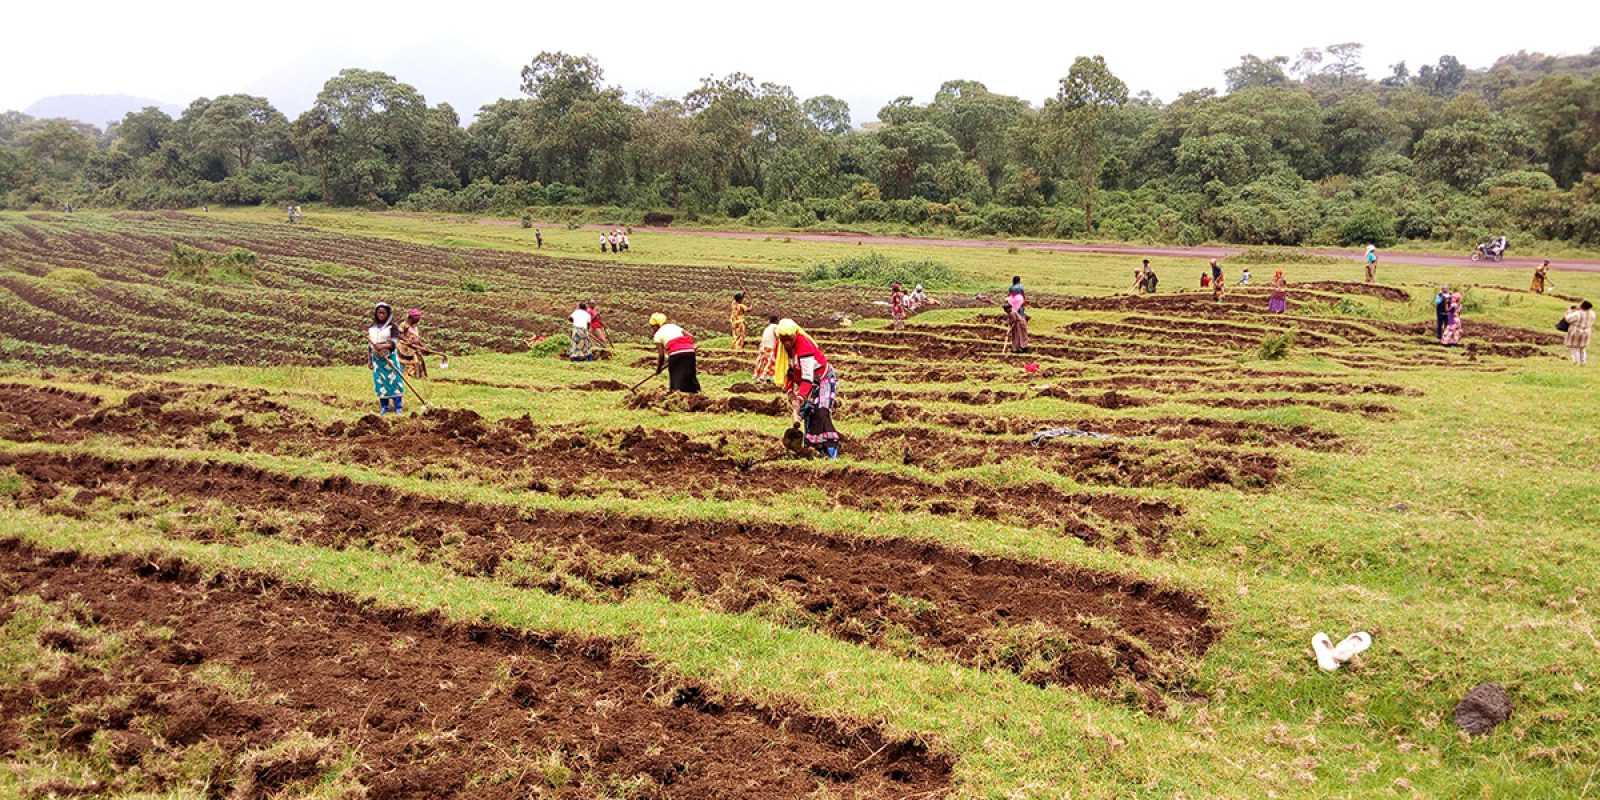 Training in agriculture fro displaced women in DRC